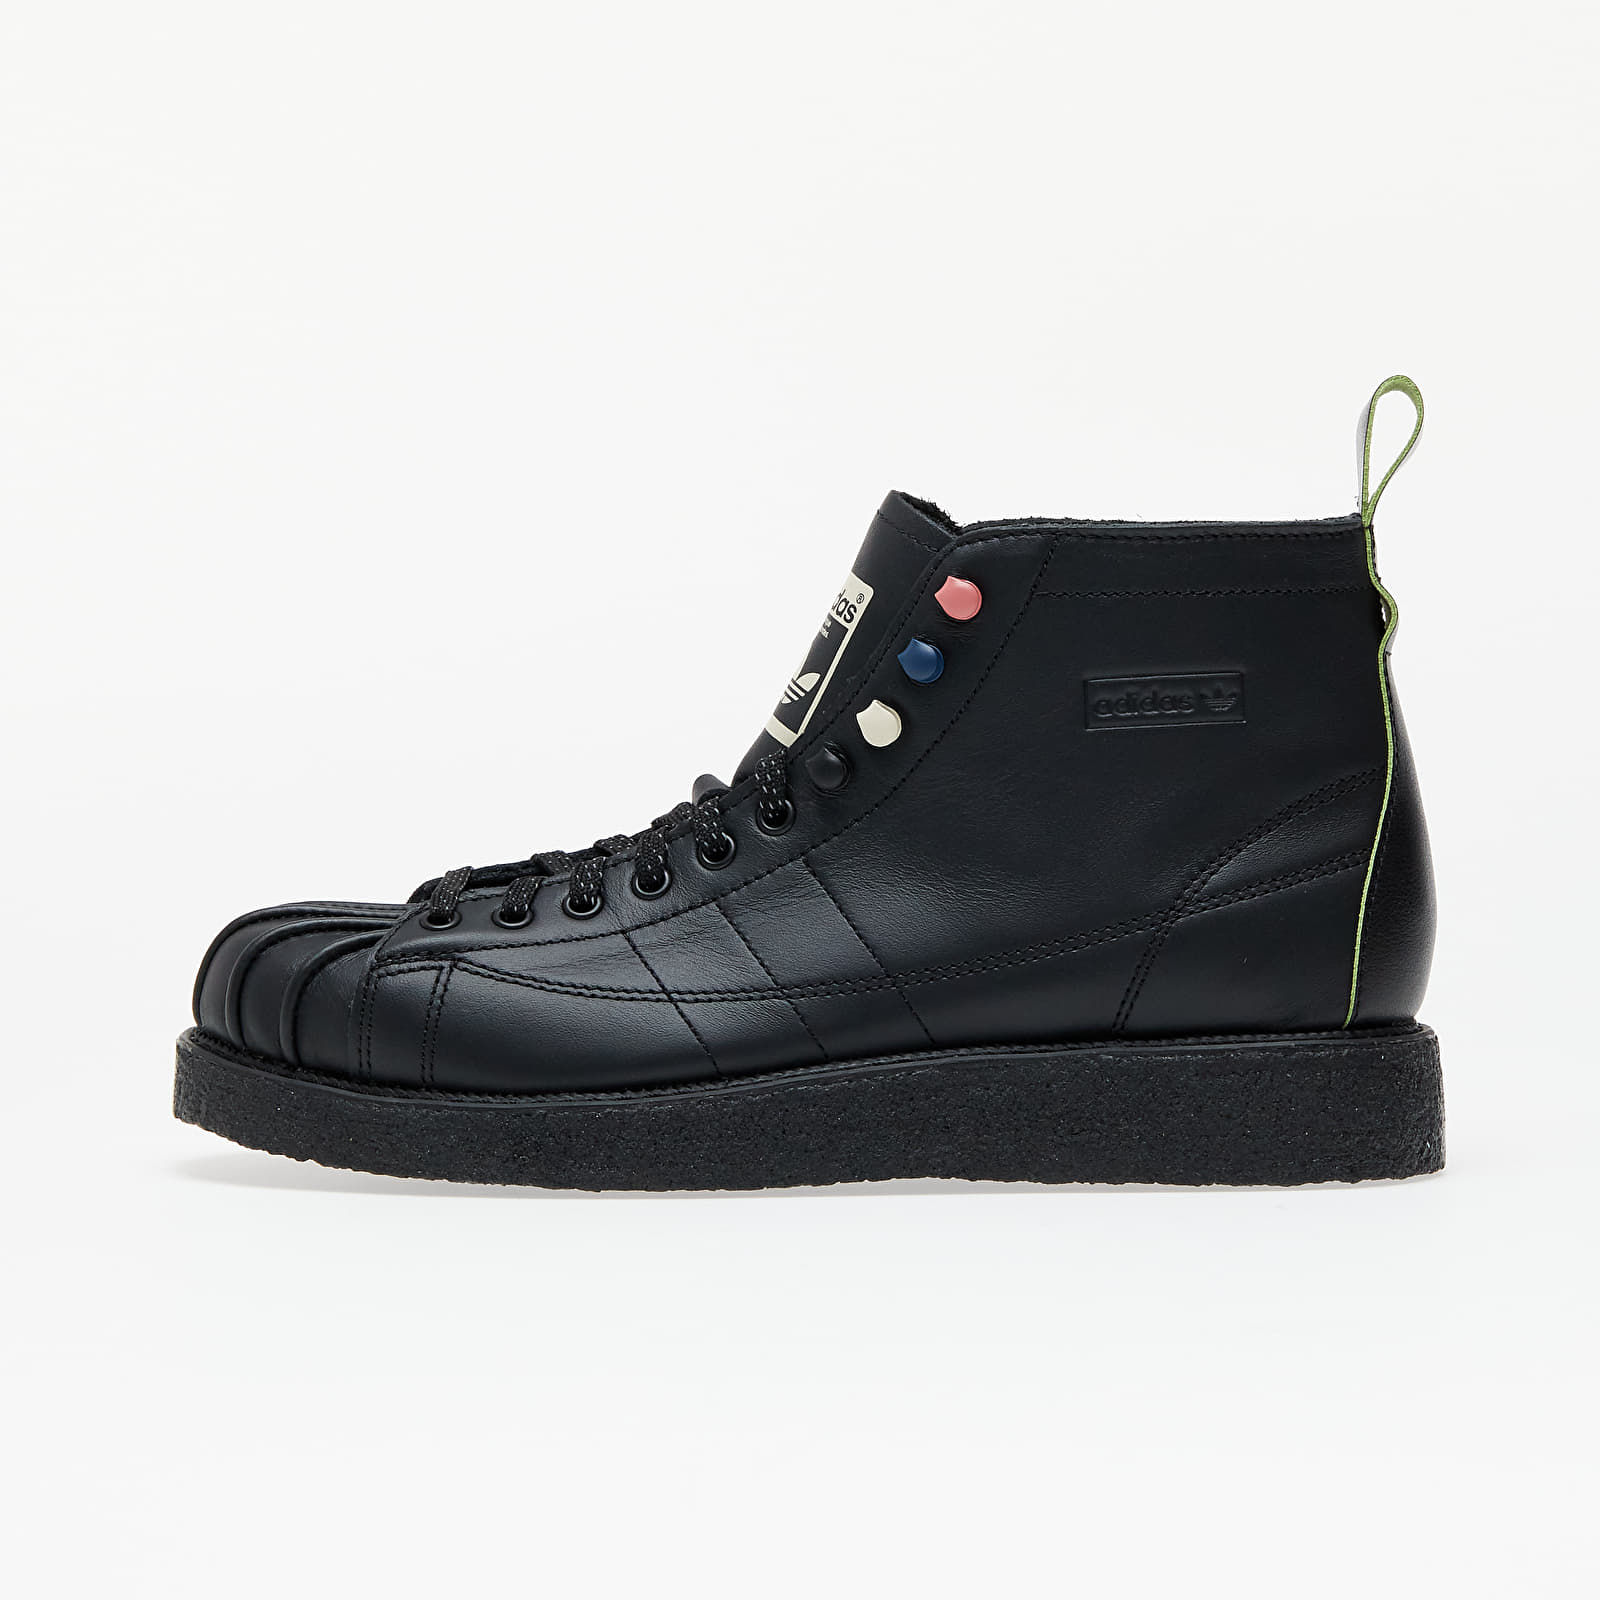 adidas Superstar Boot Luxe W Core Black/ Core Black/ Solar Green EUR 39 1/3